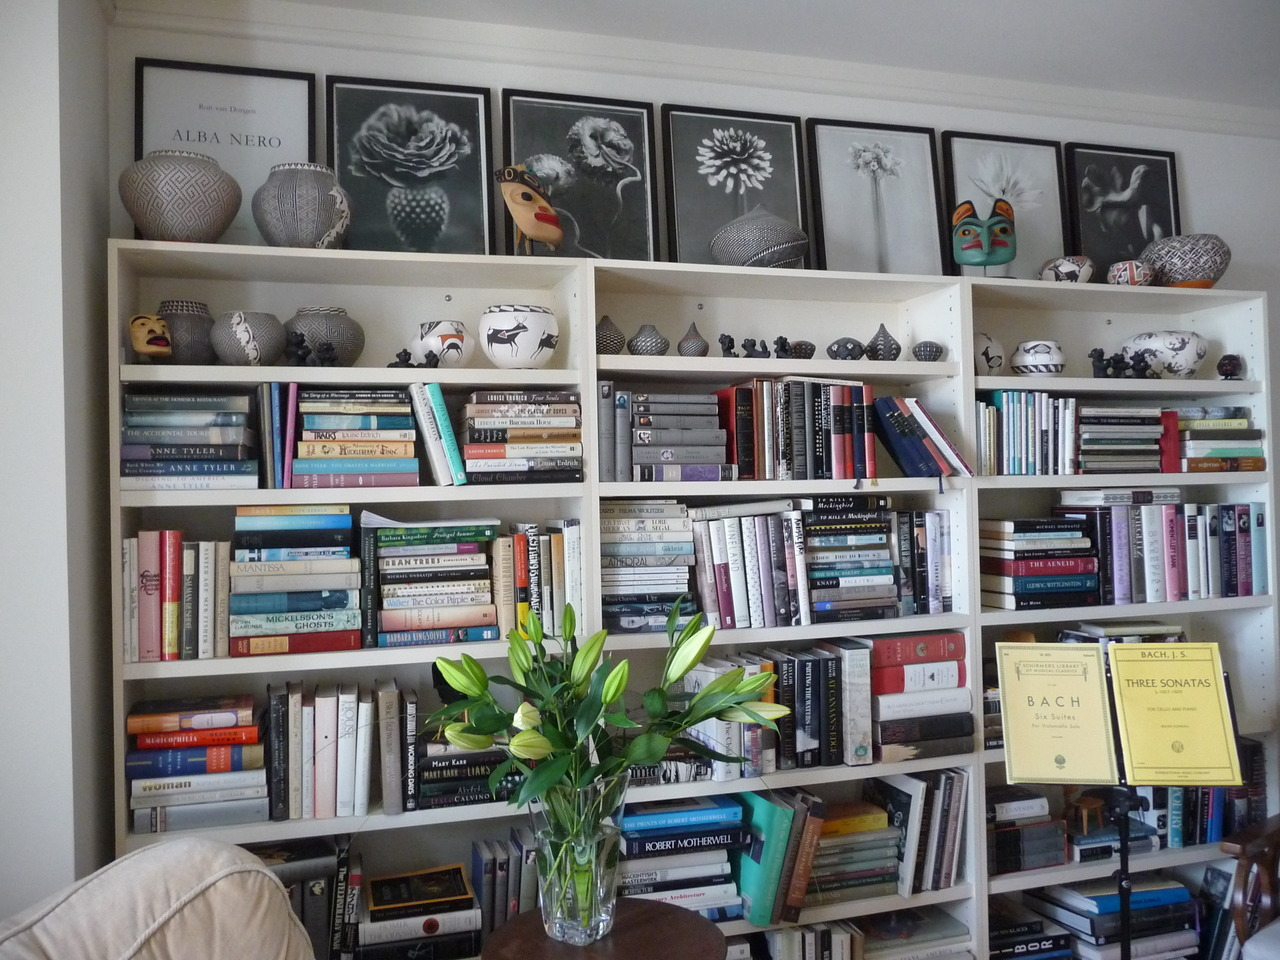 My house in San Francisco: photographs, masks, pots, books, flowers.